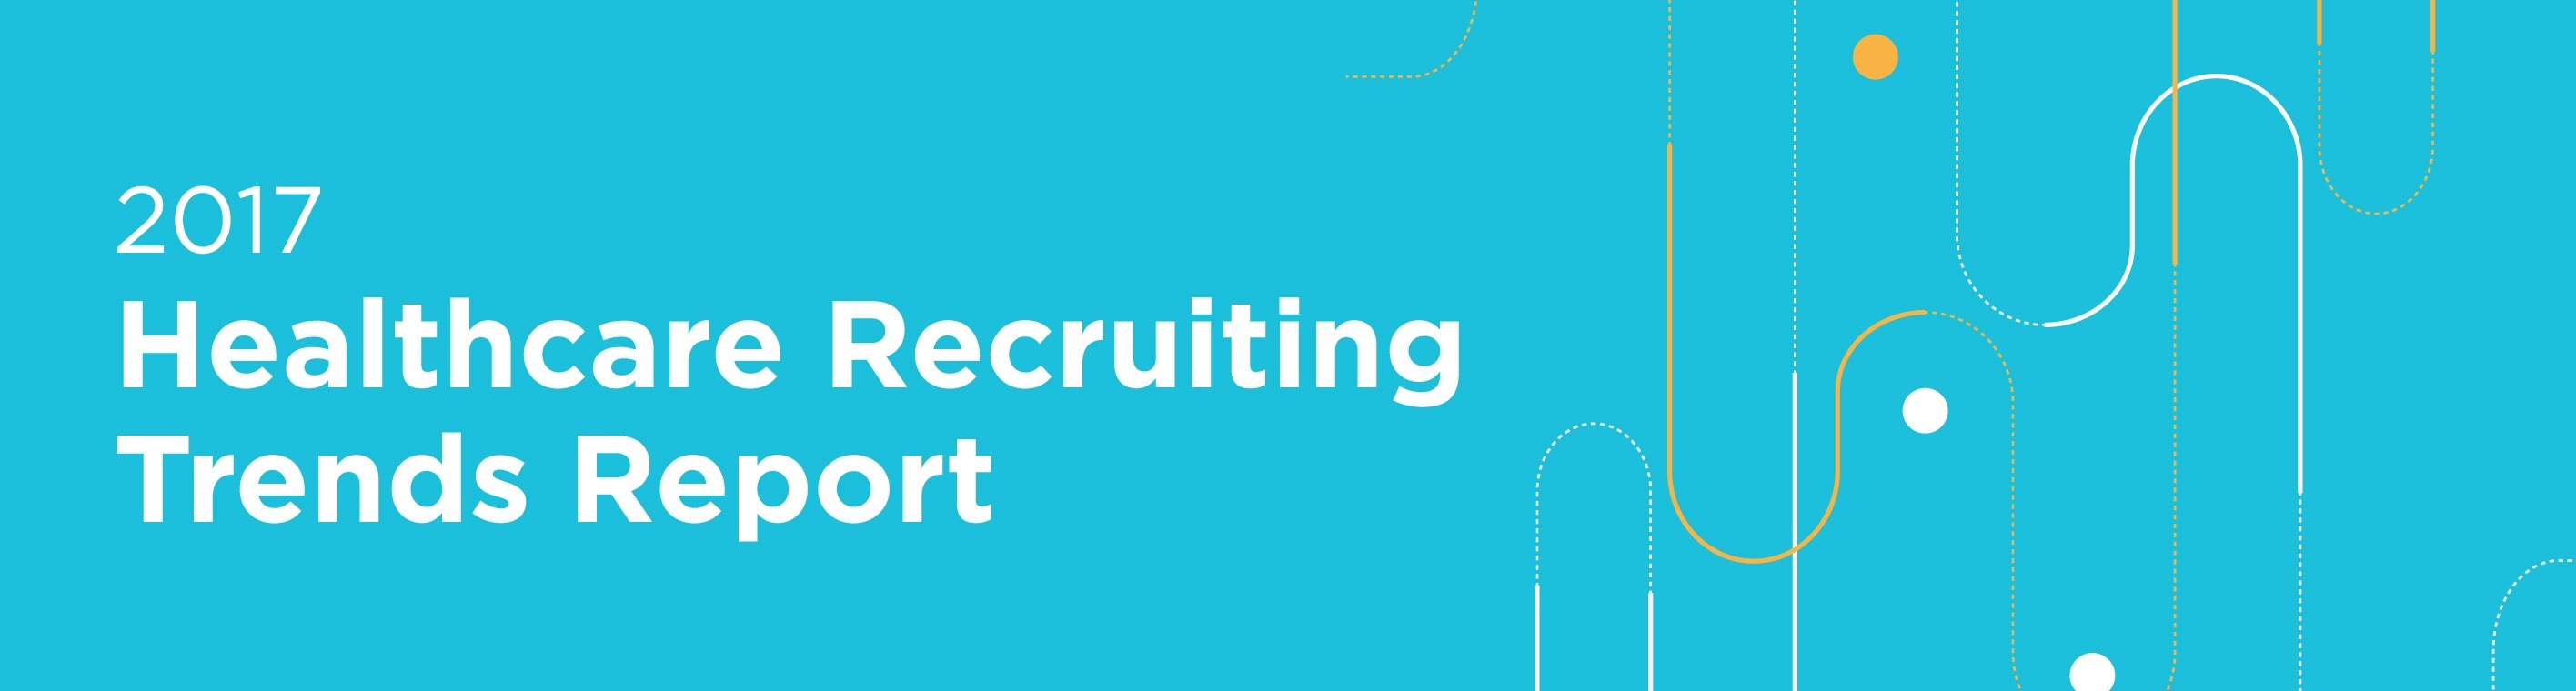 Recruiting-Trends-2017-header